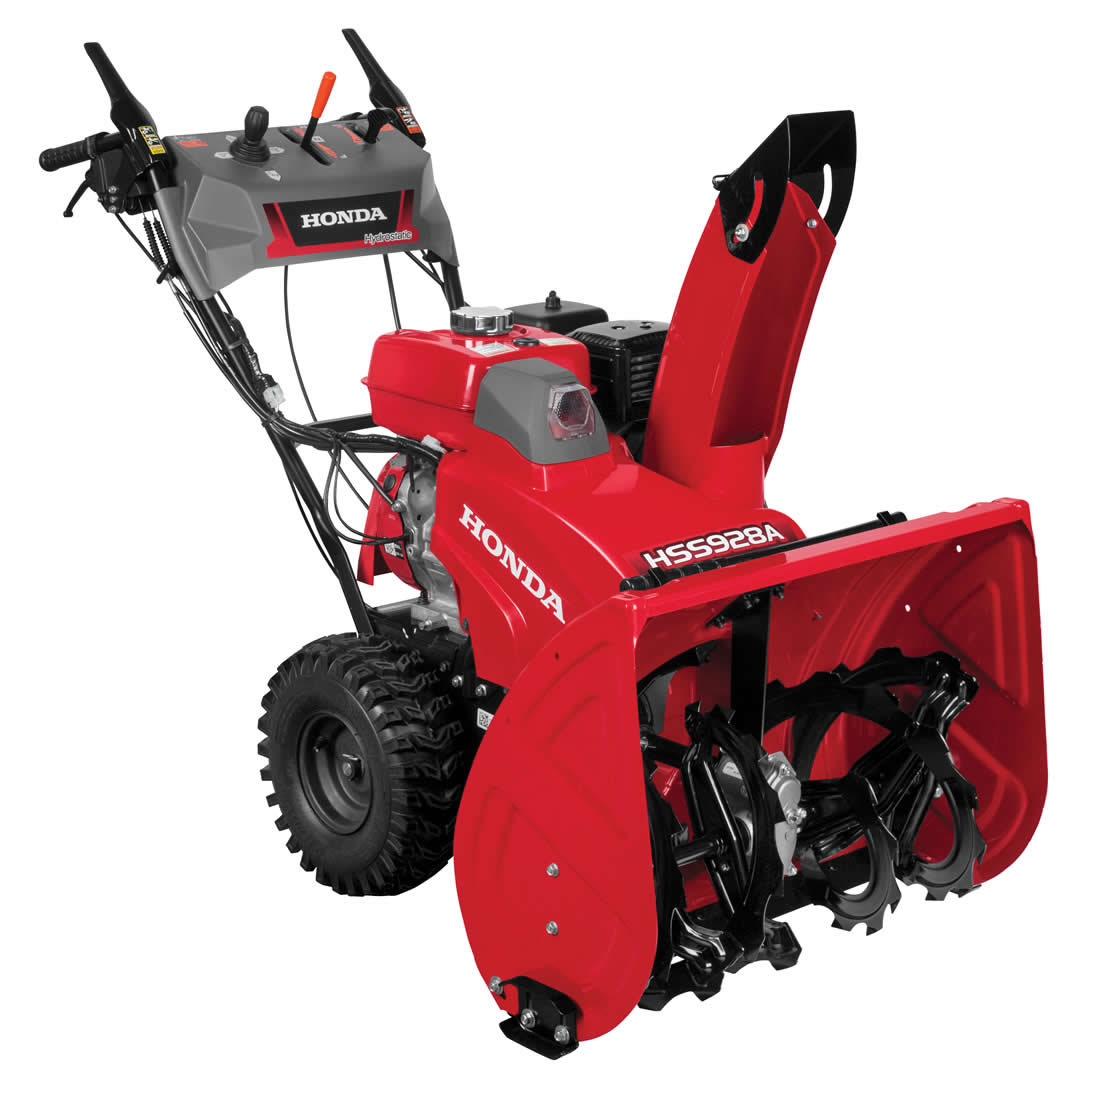 Picture of Honda HSS928AAW Snow Blower, Gas, 270 cc Engine Displacement, 4-Cycle OHV Engine, 2 -Stage, 52 ft Throw